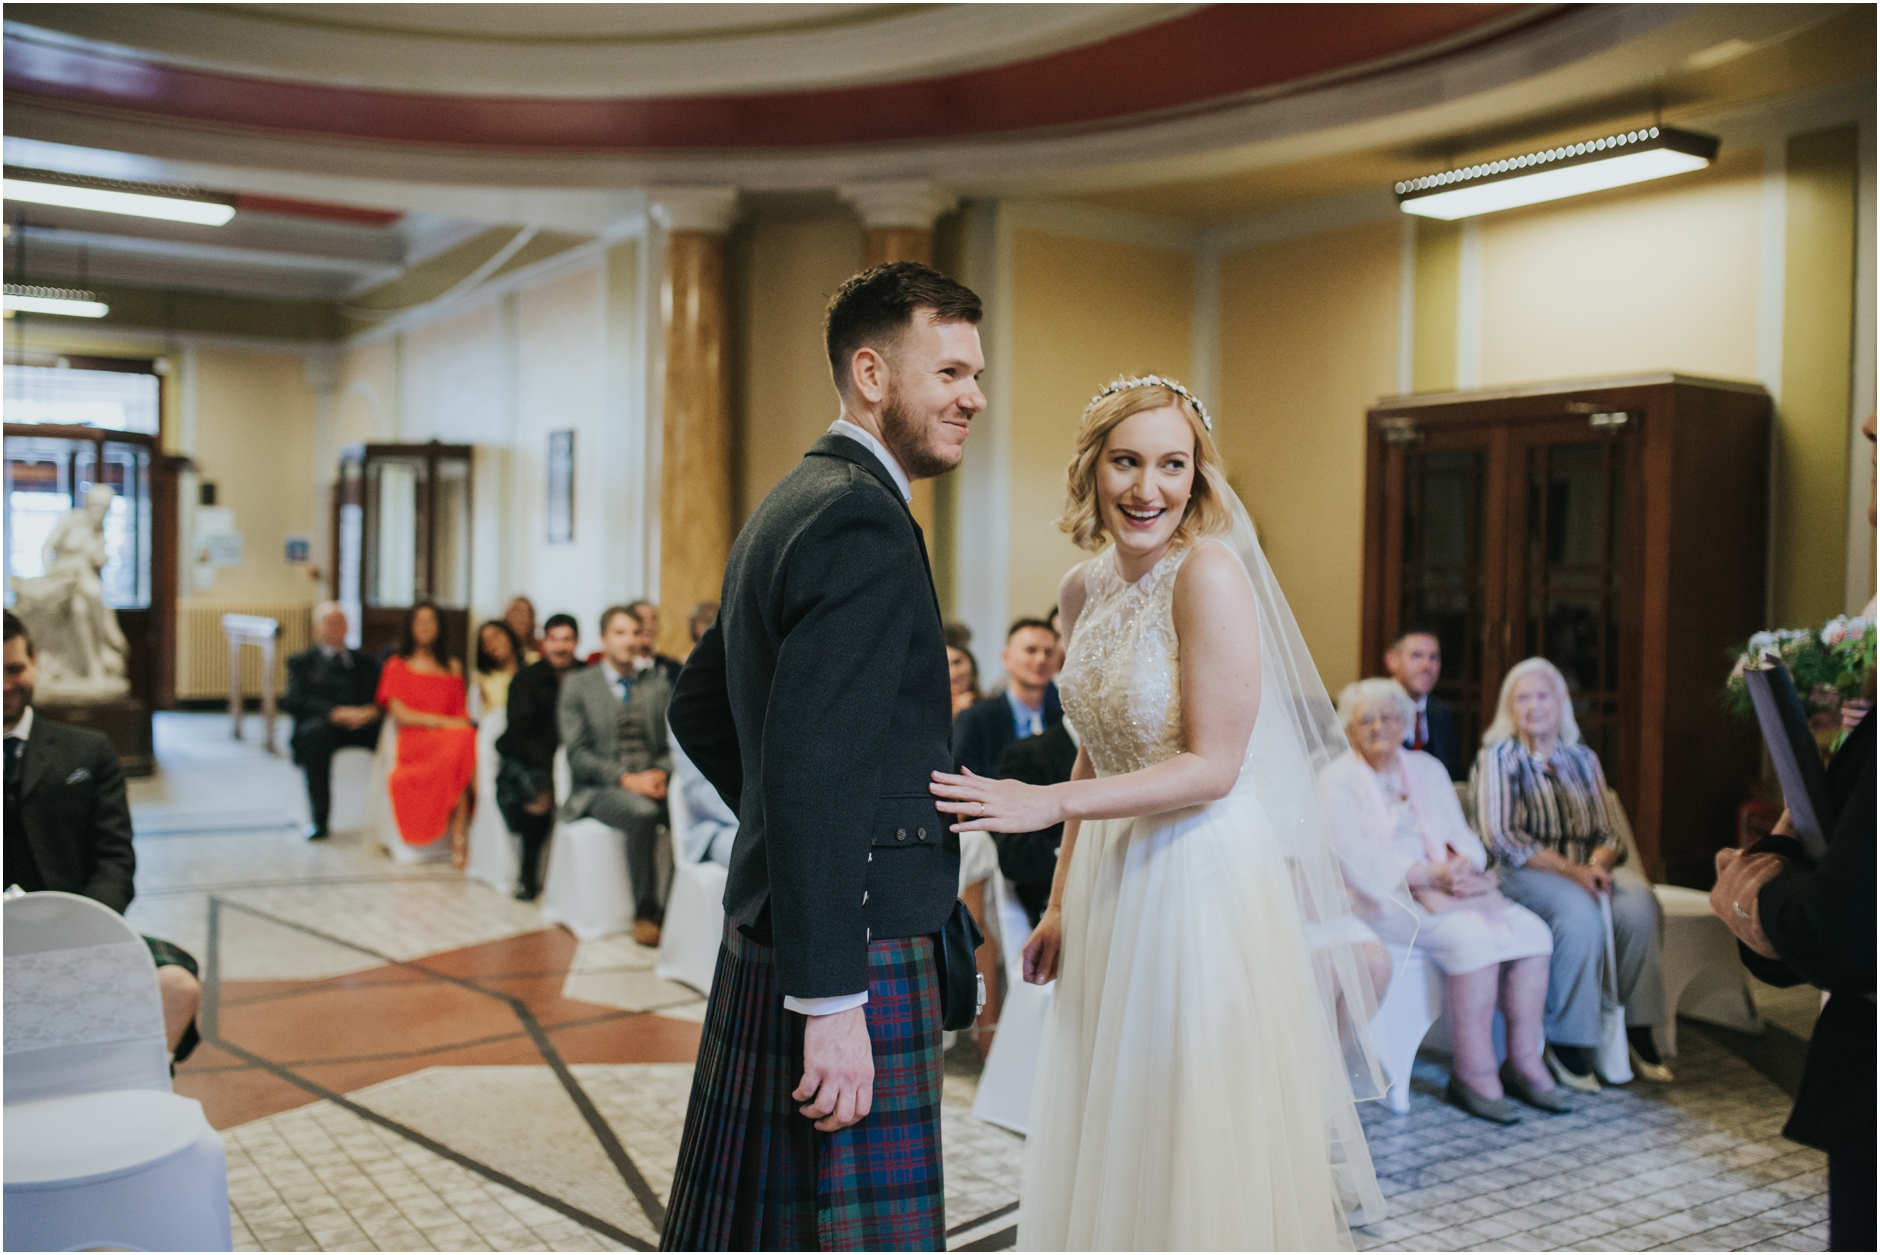 wedding ceremony at thomas morton hall edinburgh leith theatre